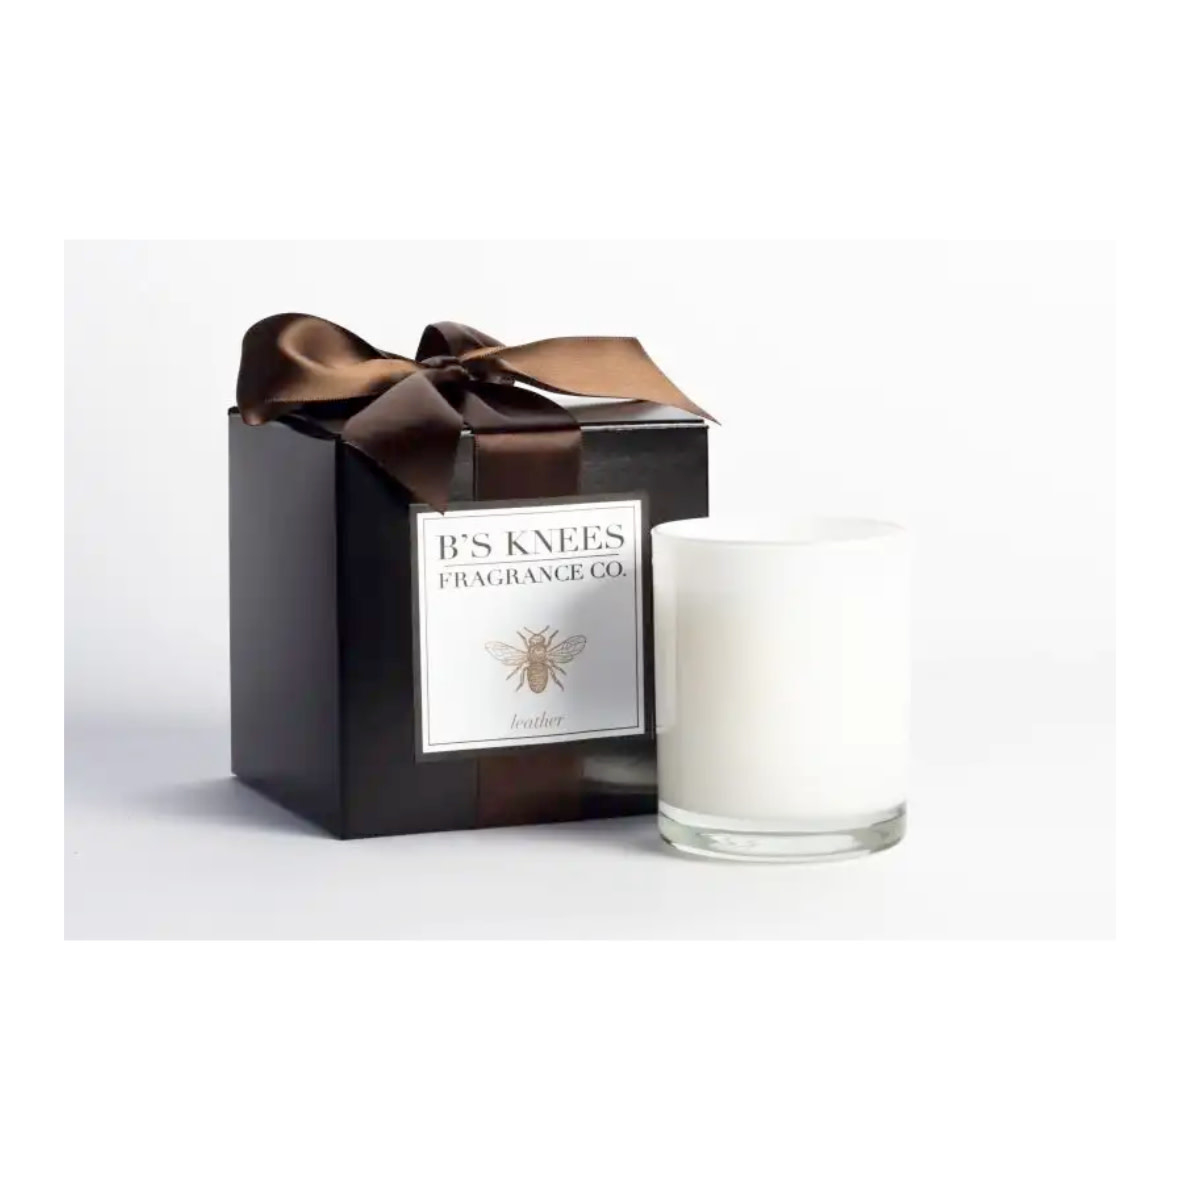 B's Knees Fragrance Co. B's Knees Leather 1 Wick White Candle